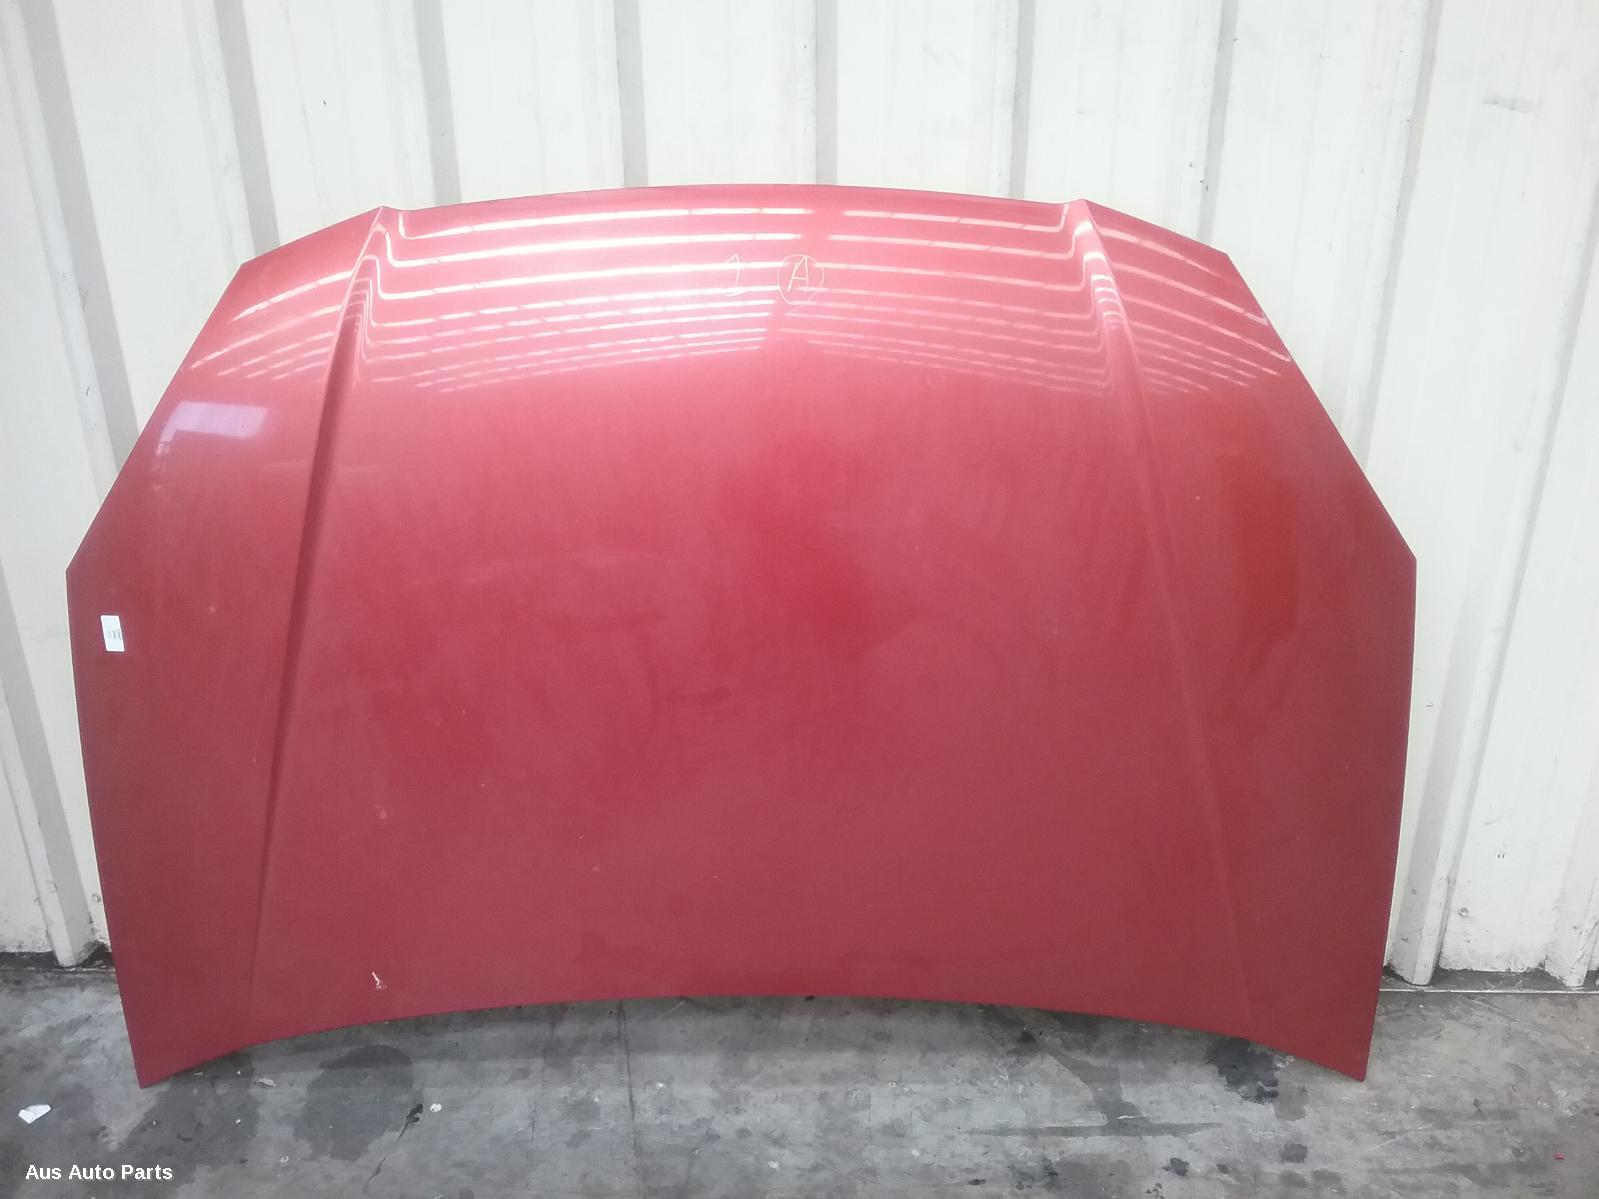 52729  Used Bonnet For 2006 Rio